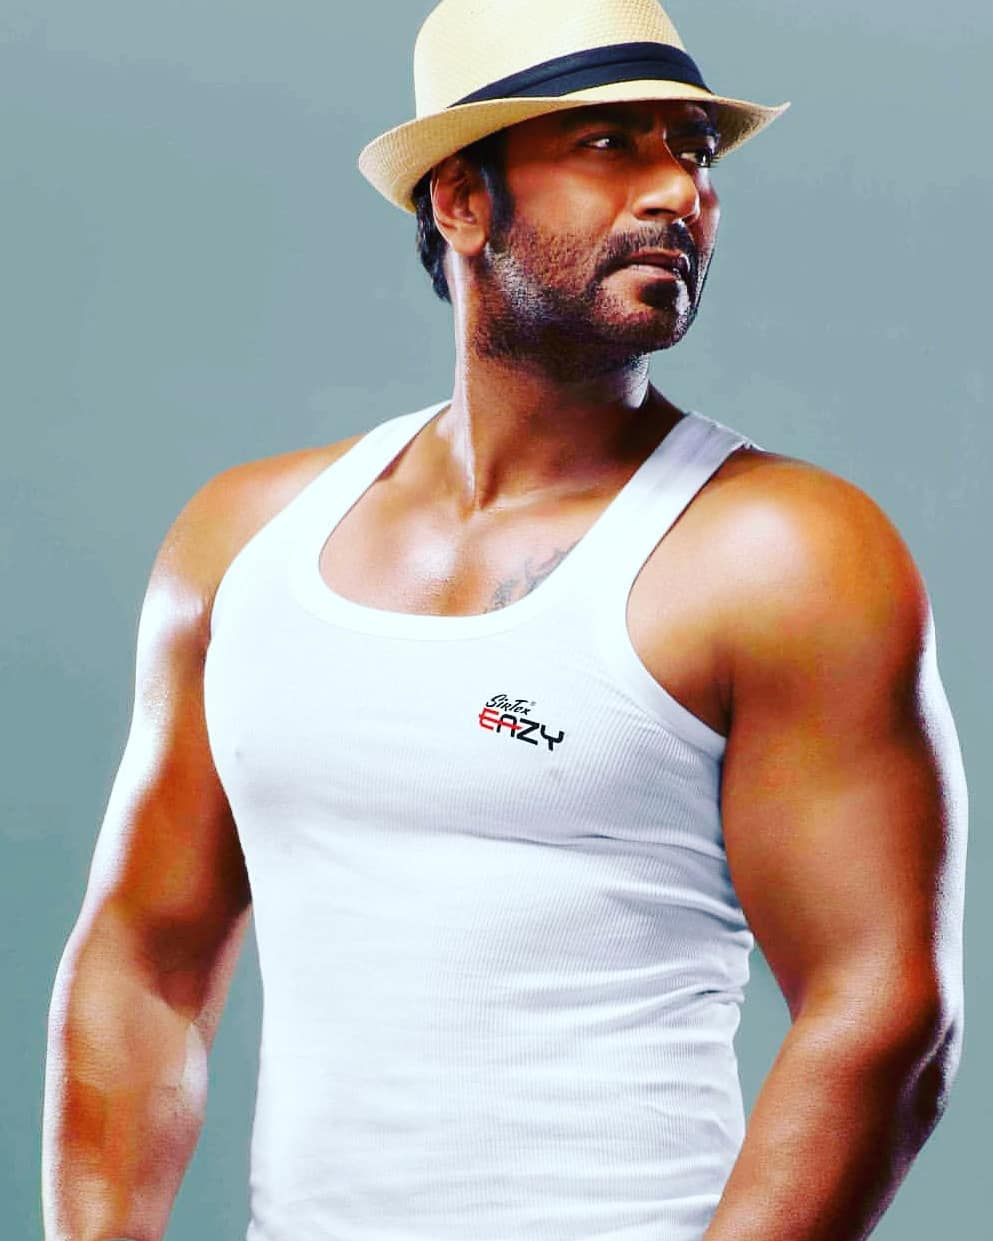 Ajay Devgan Picture | Ajay Devgan Pic - HD Actress Photo